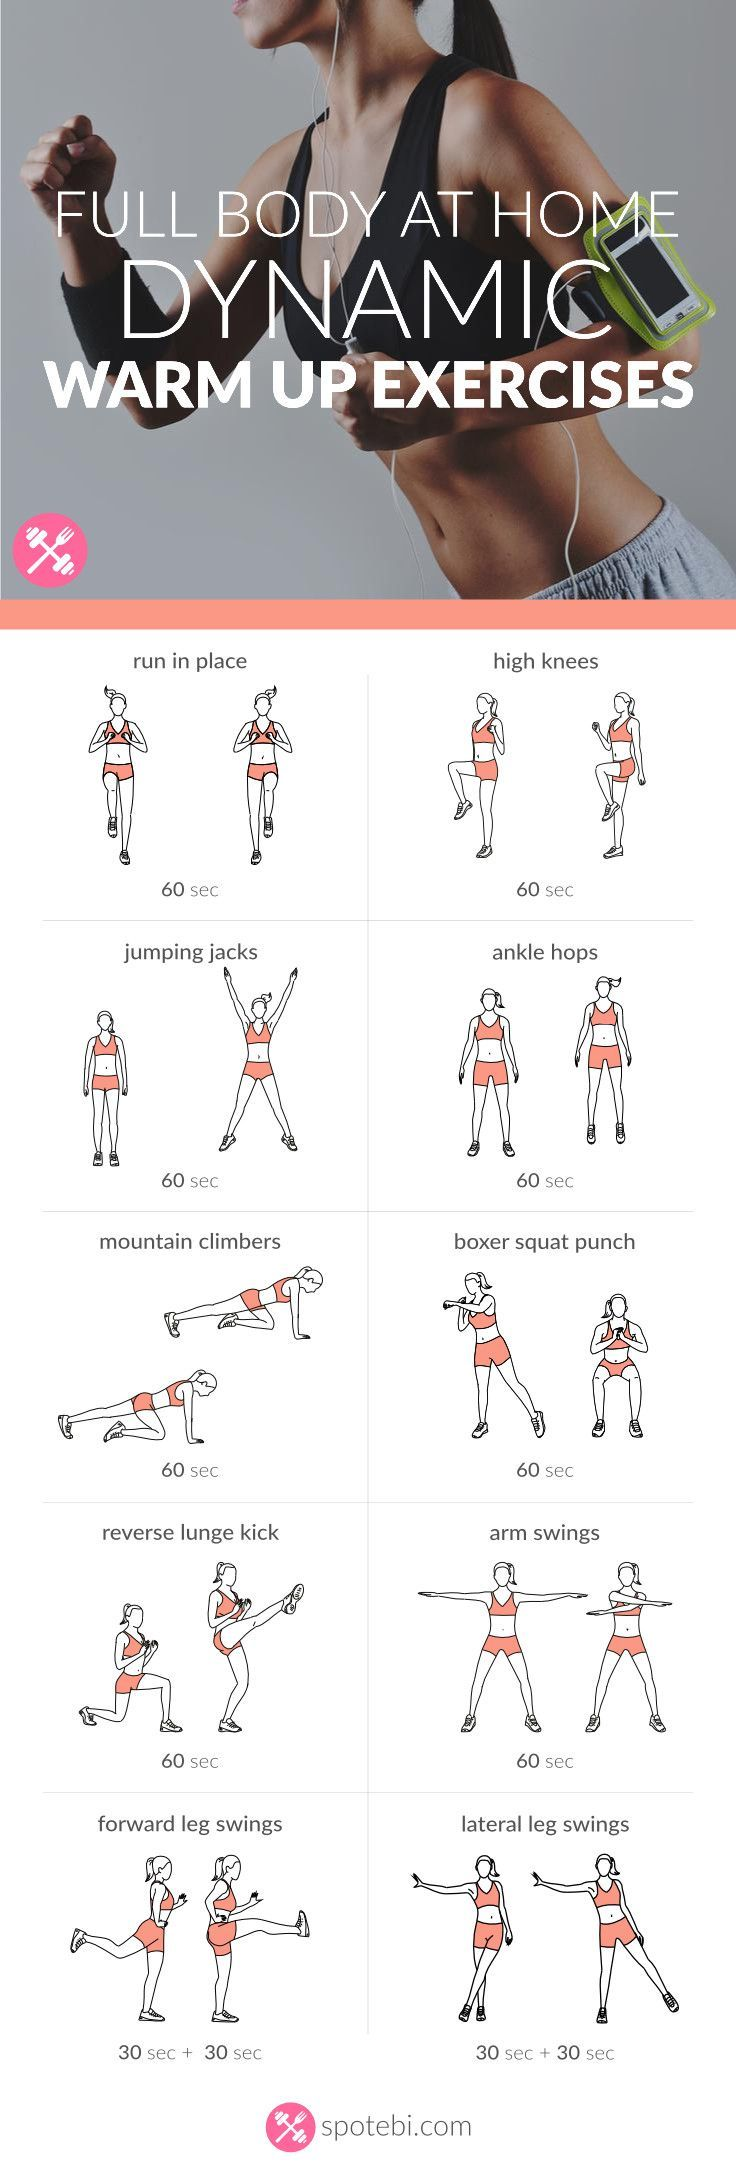 Warm up your entire body at home with these dynamic warm up exercises. Raise your heart rate and prepare your body and joints for the workout to follow. http://www.spotebi.com/workout-routines/full-body-at-home-dynamic-warm-up-exercises/